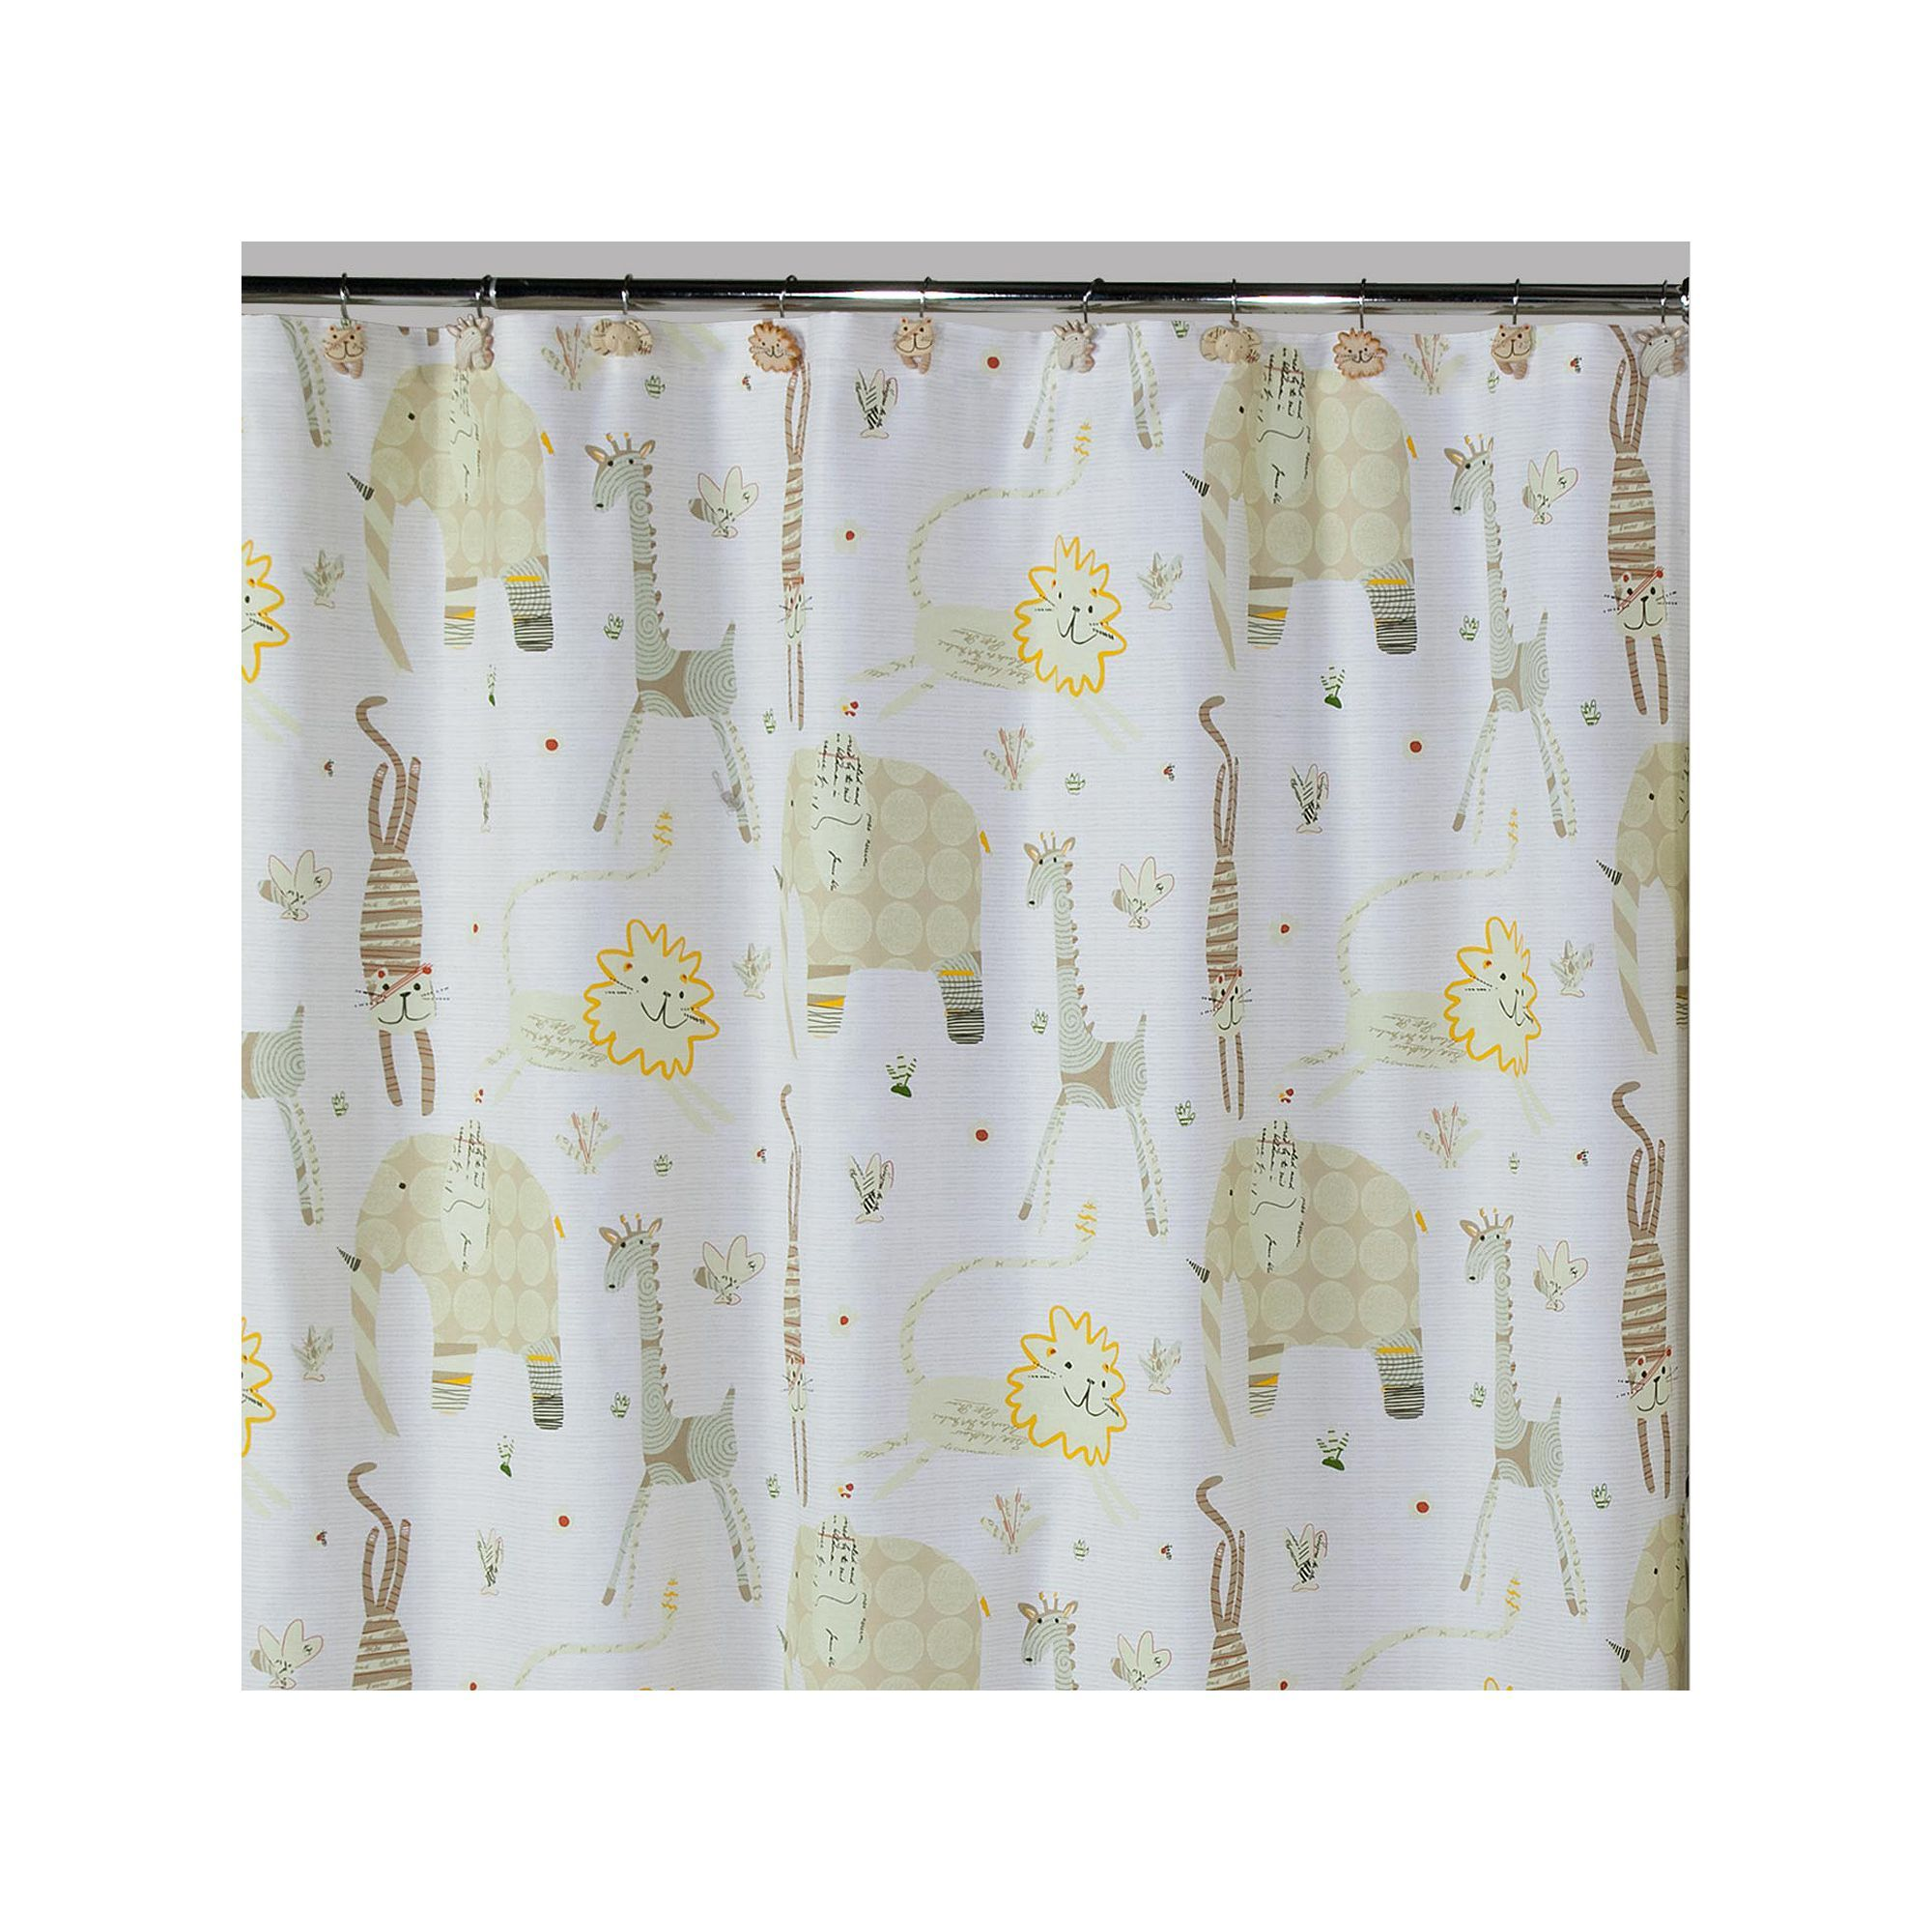 Creative Bath Animal Crackers Fabric Shower Curtain, Multicolor ...